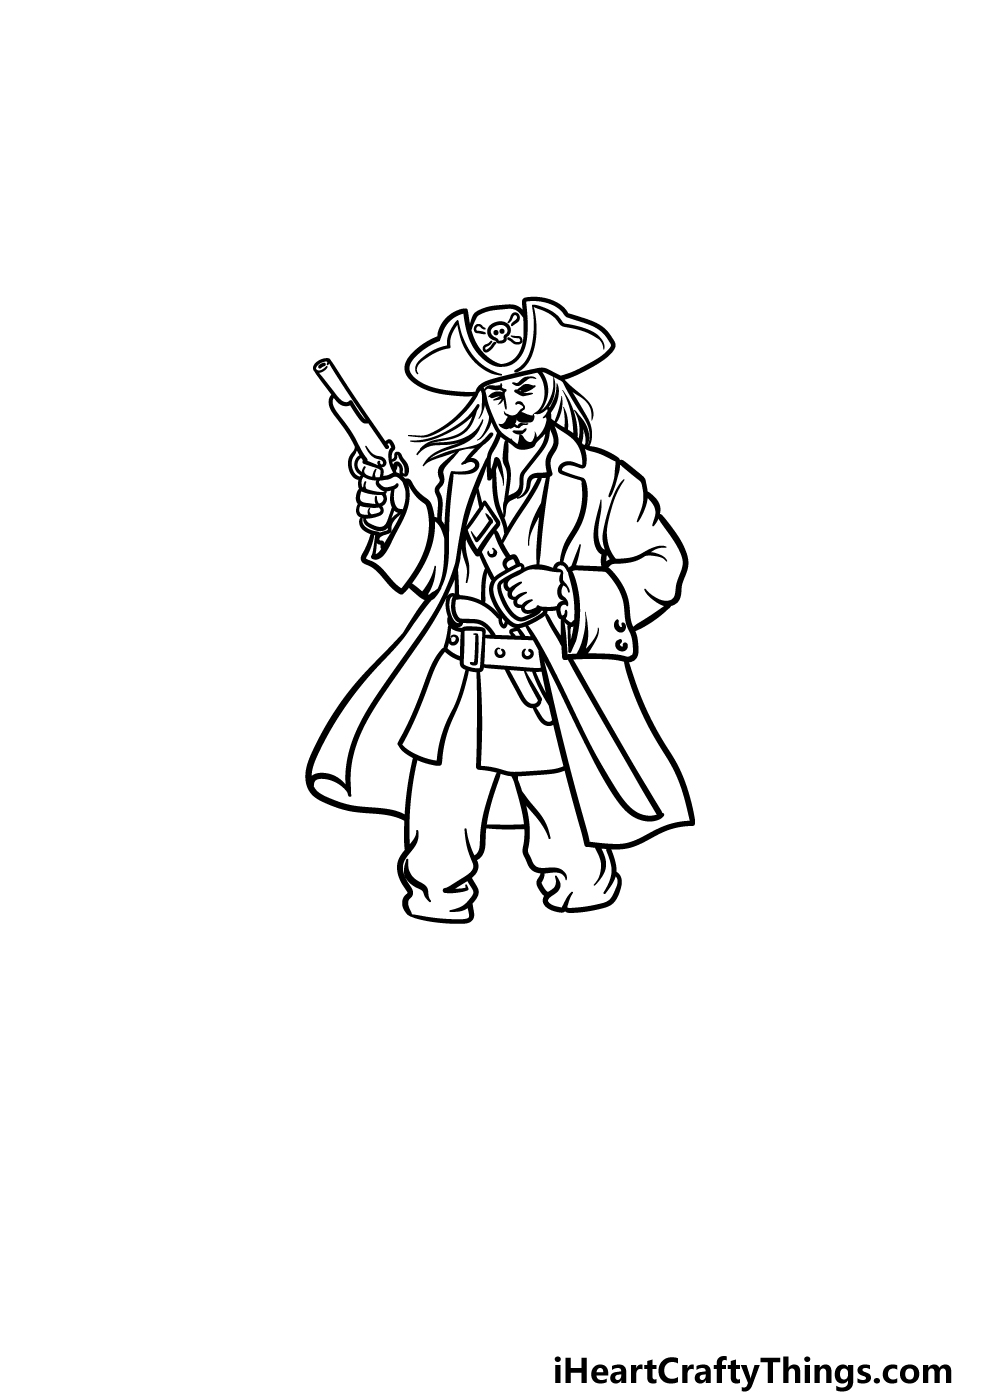 drawing a pirate step 5